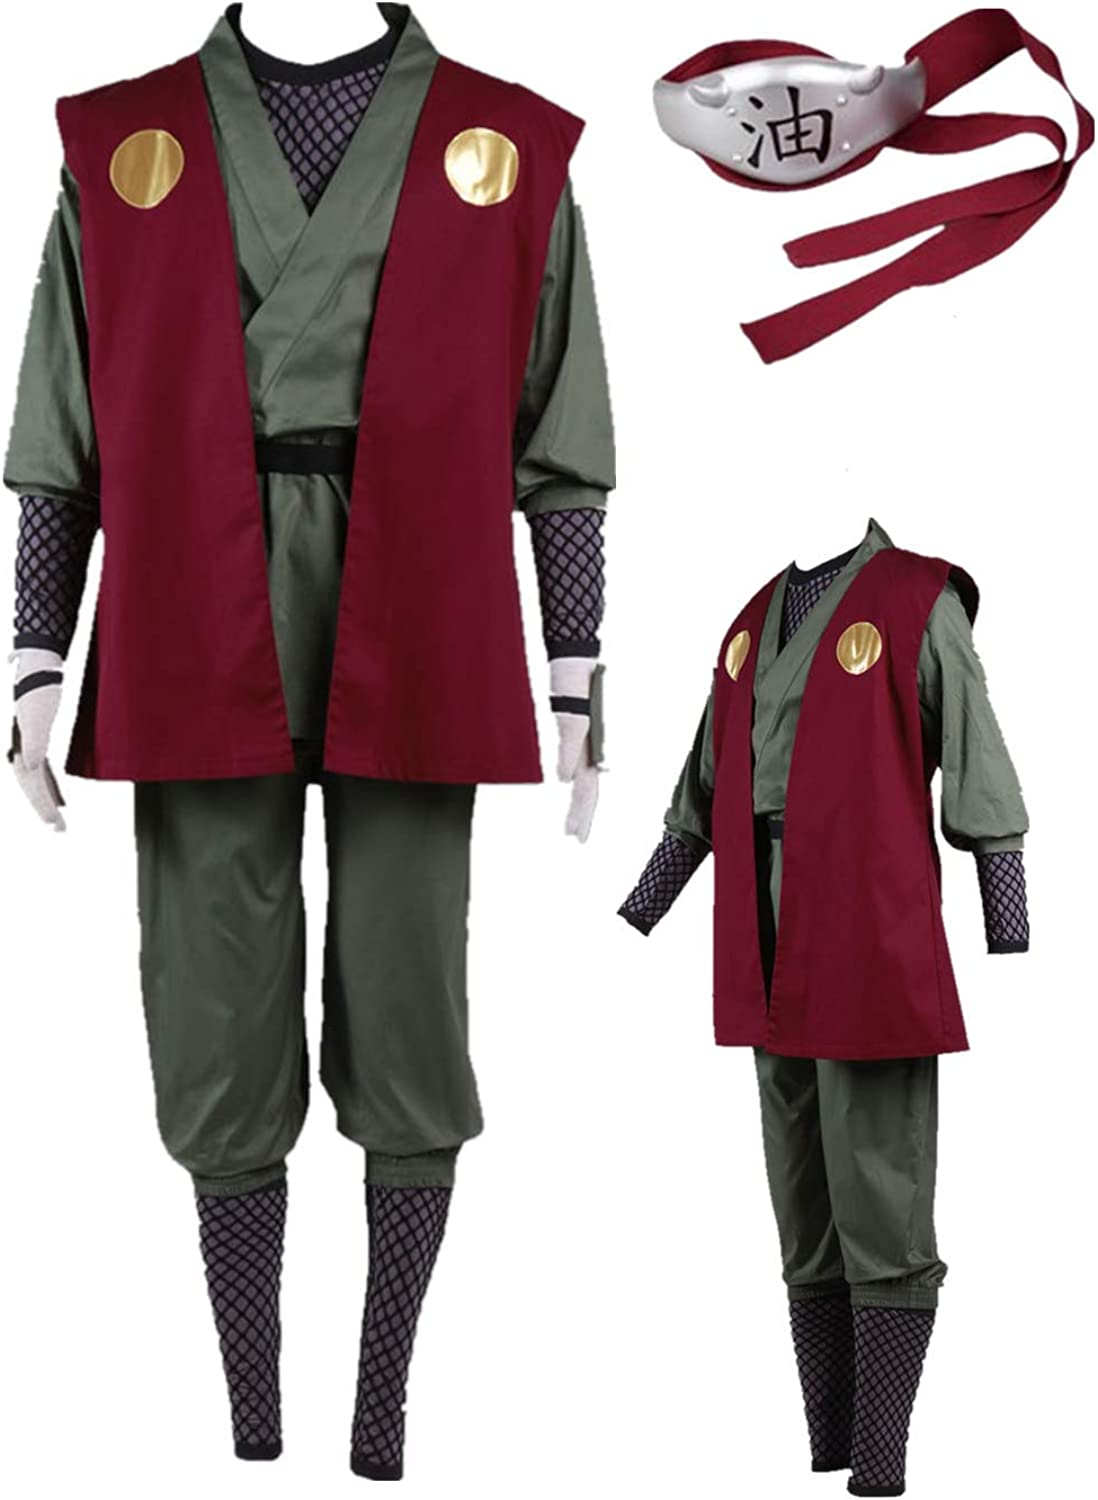 US Size Adult Cosplay Costumes shirt Full Manufacturer NEW regenerated product suit mesh Men's